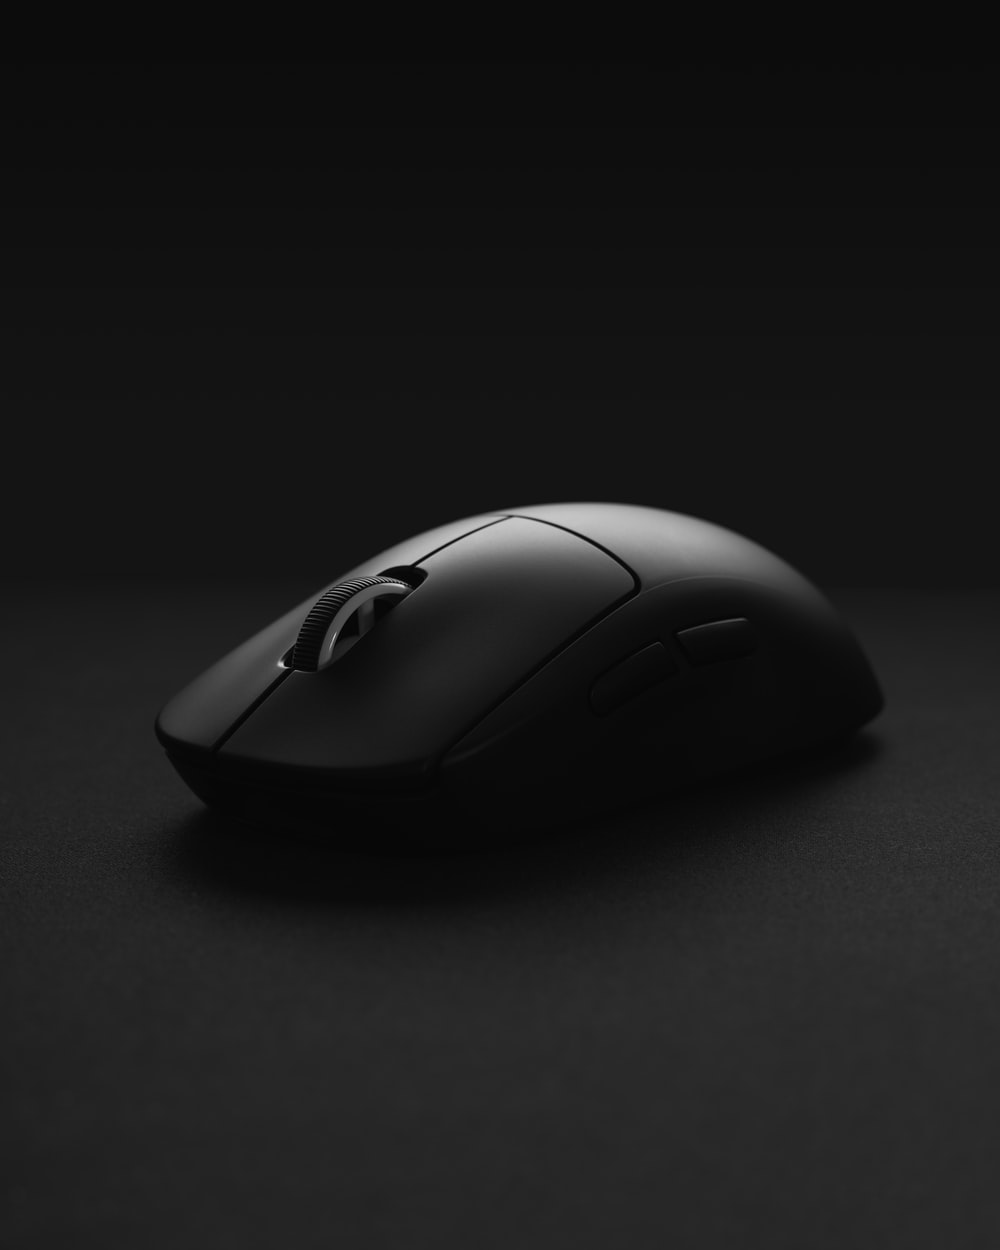 black cordless computer mouse on black surface